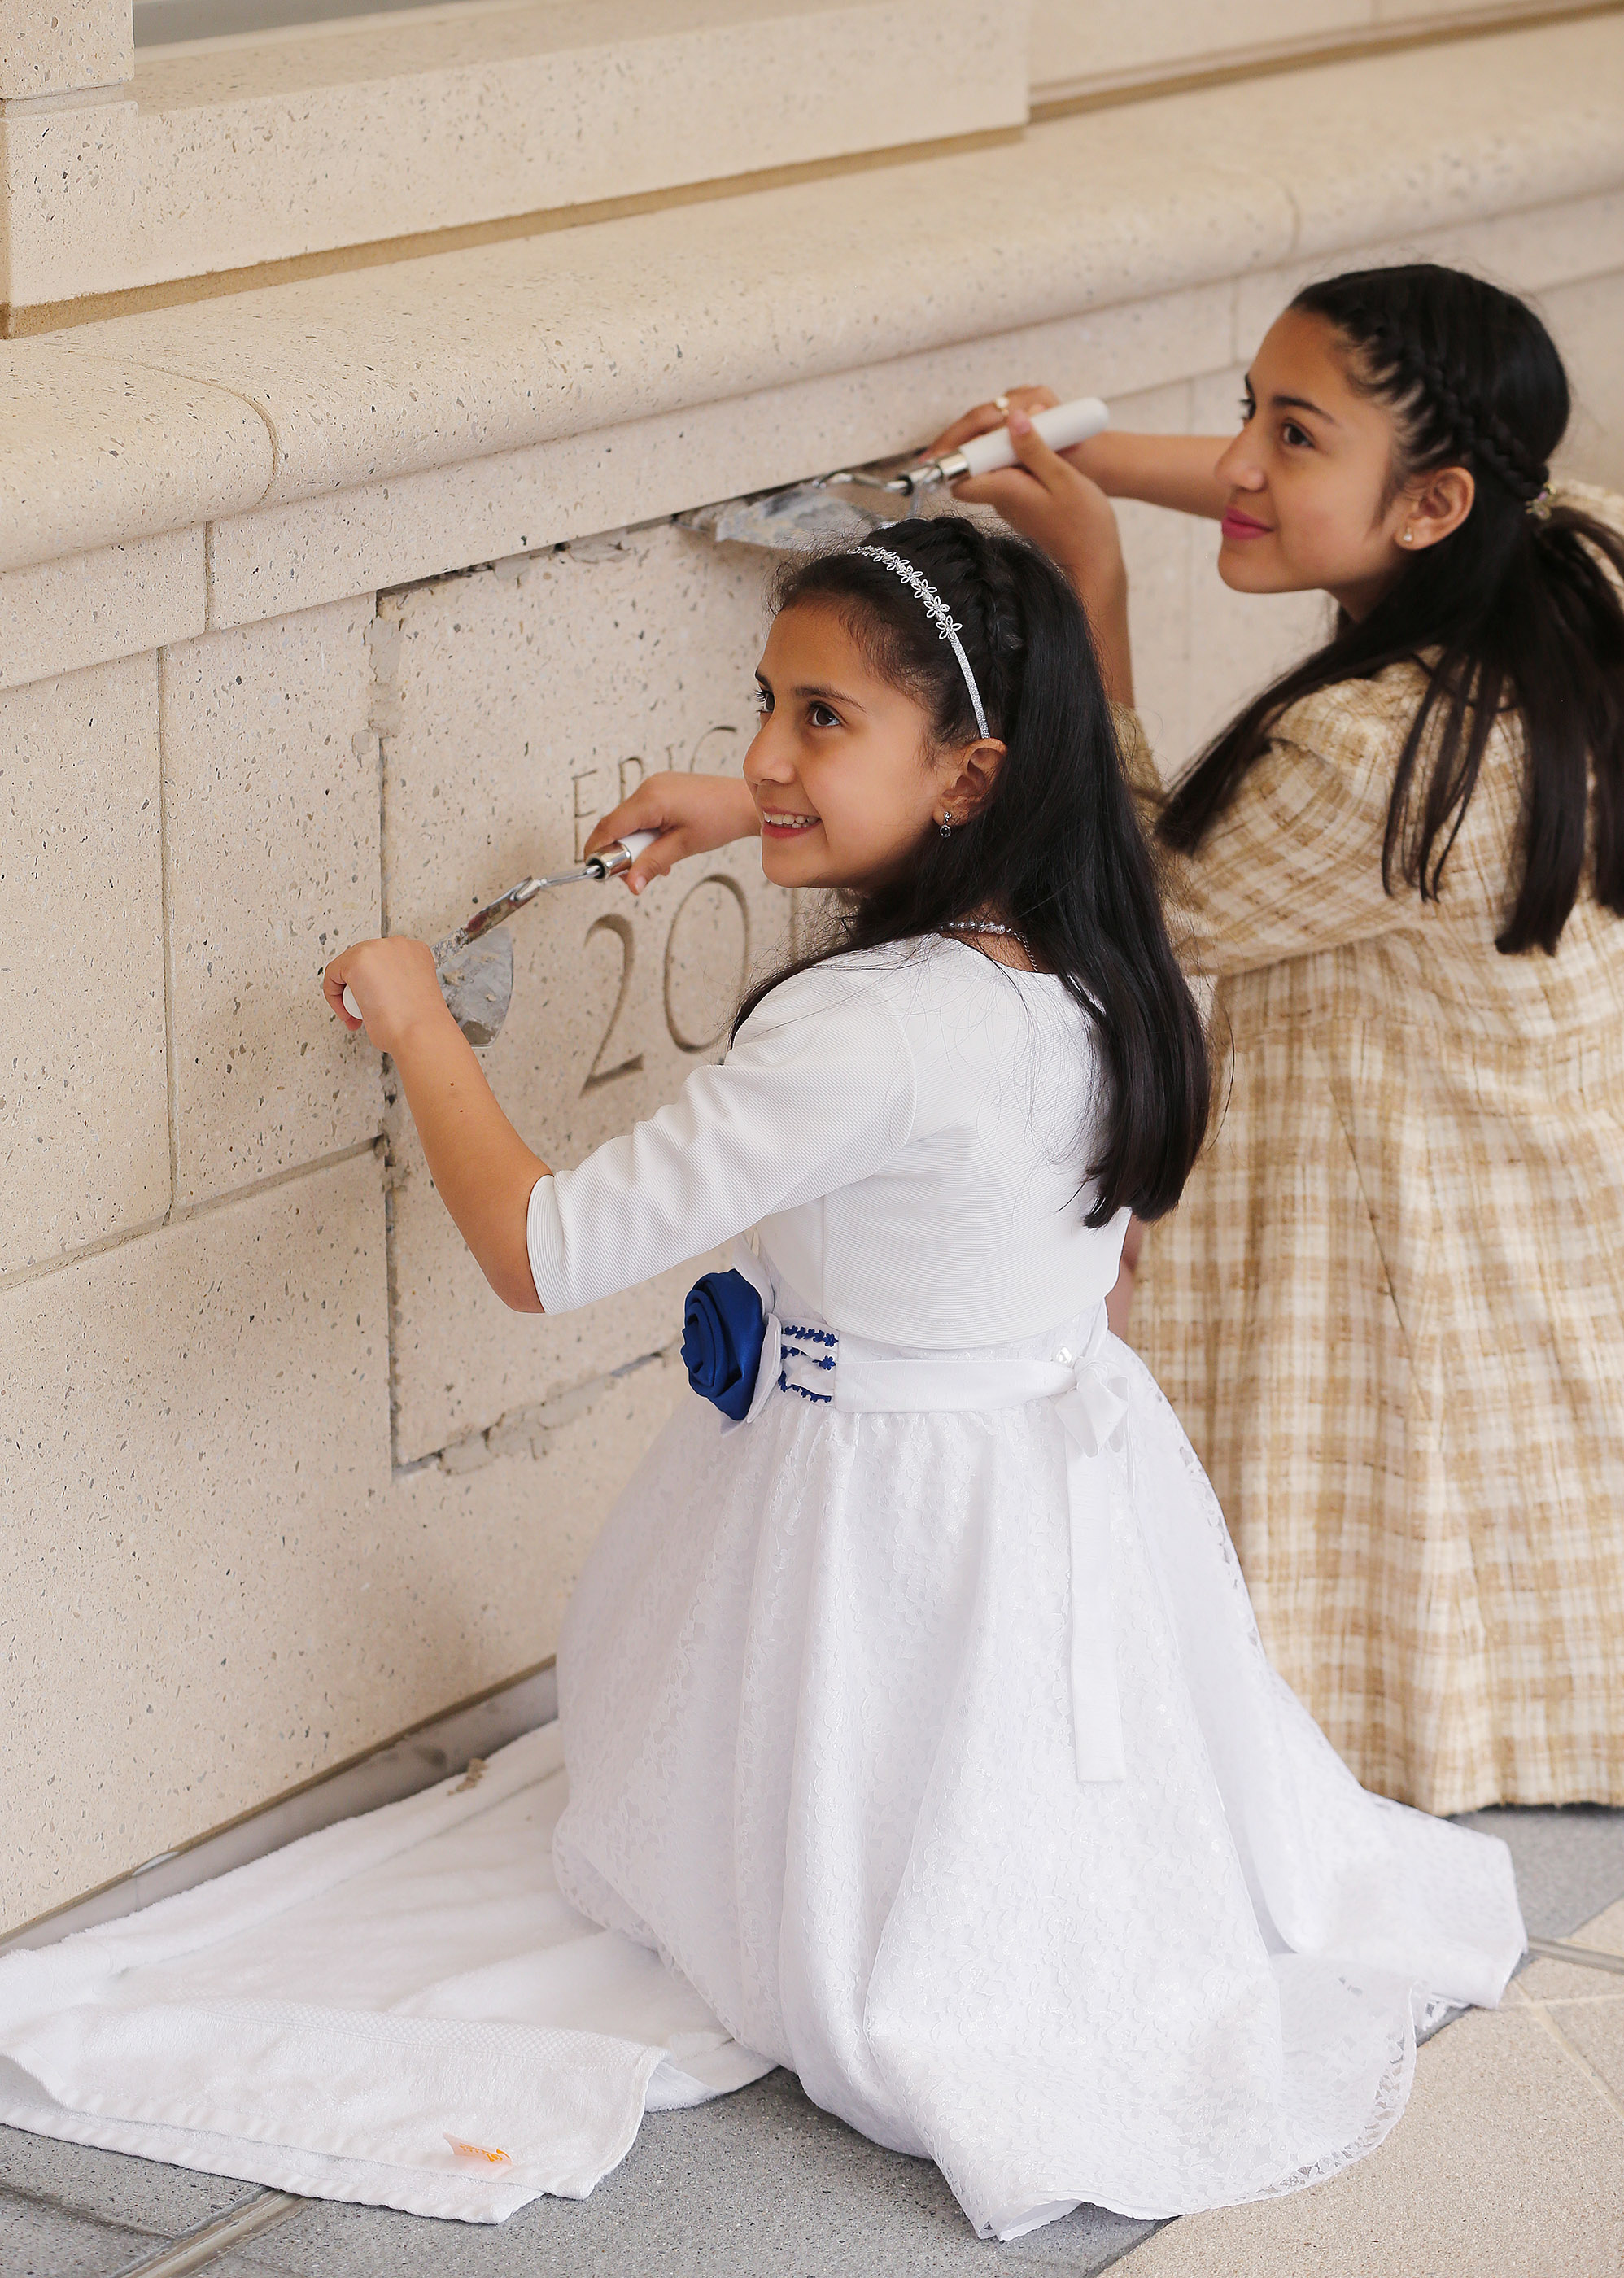 Laura and Alicia Ovalle place mortar in the cornerstone of the Concepcion Chile Temple on Sunday, Oct. 28, 2018, in Concepcion, Chile.